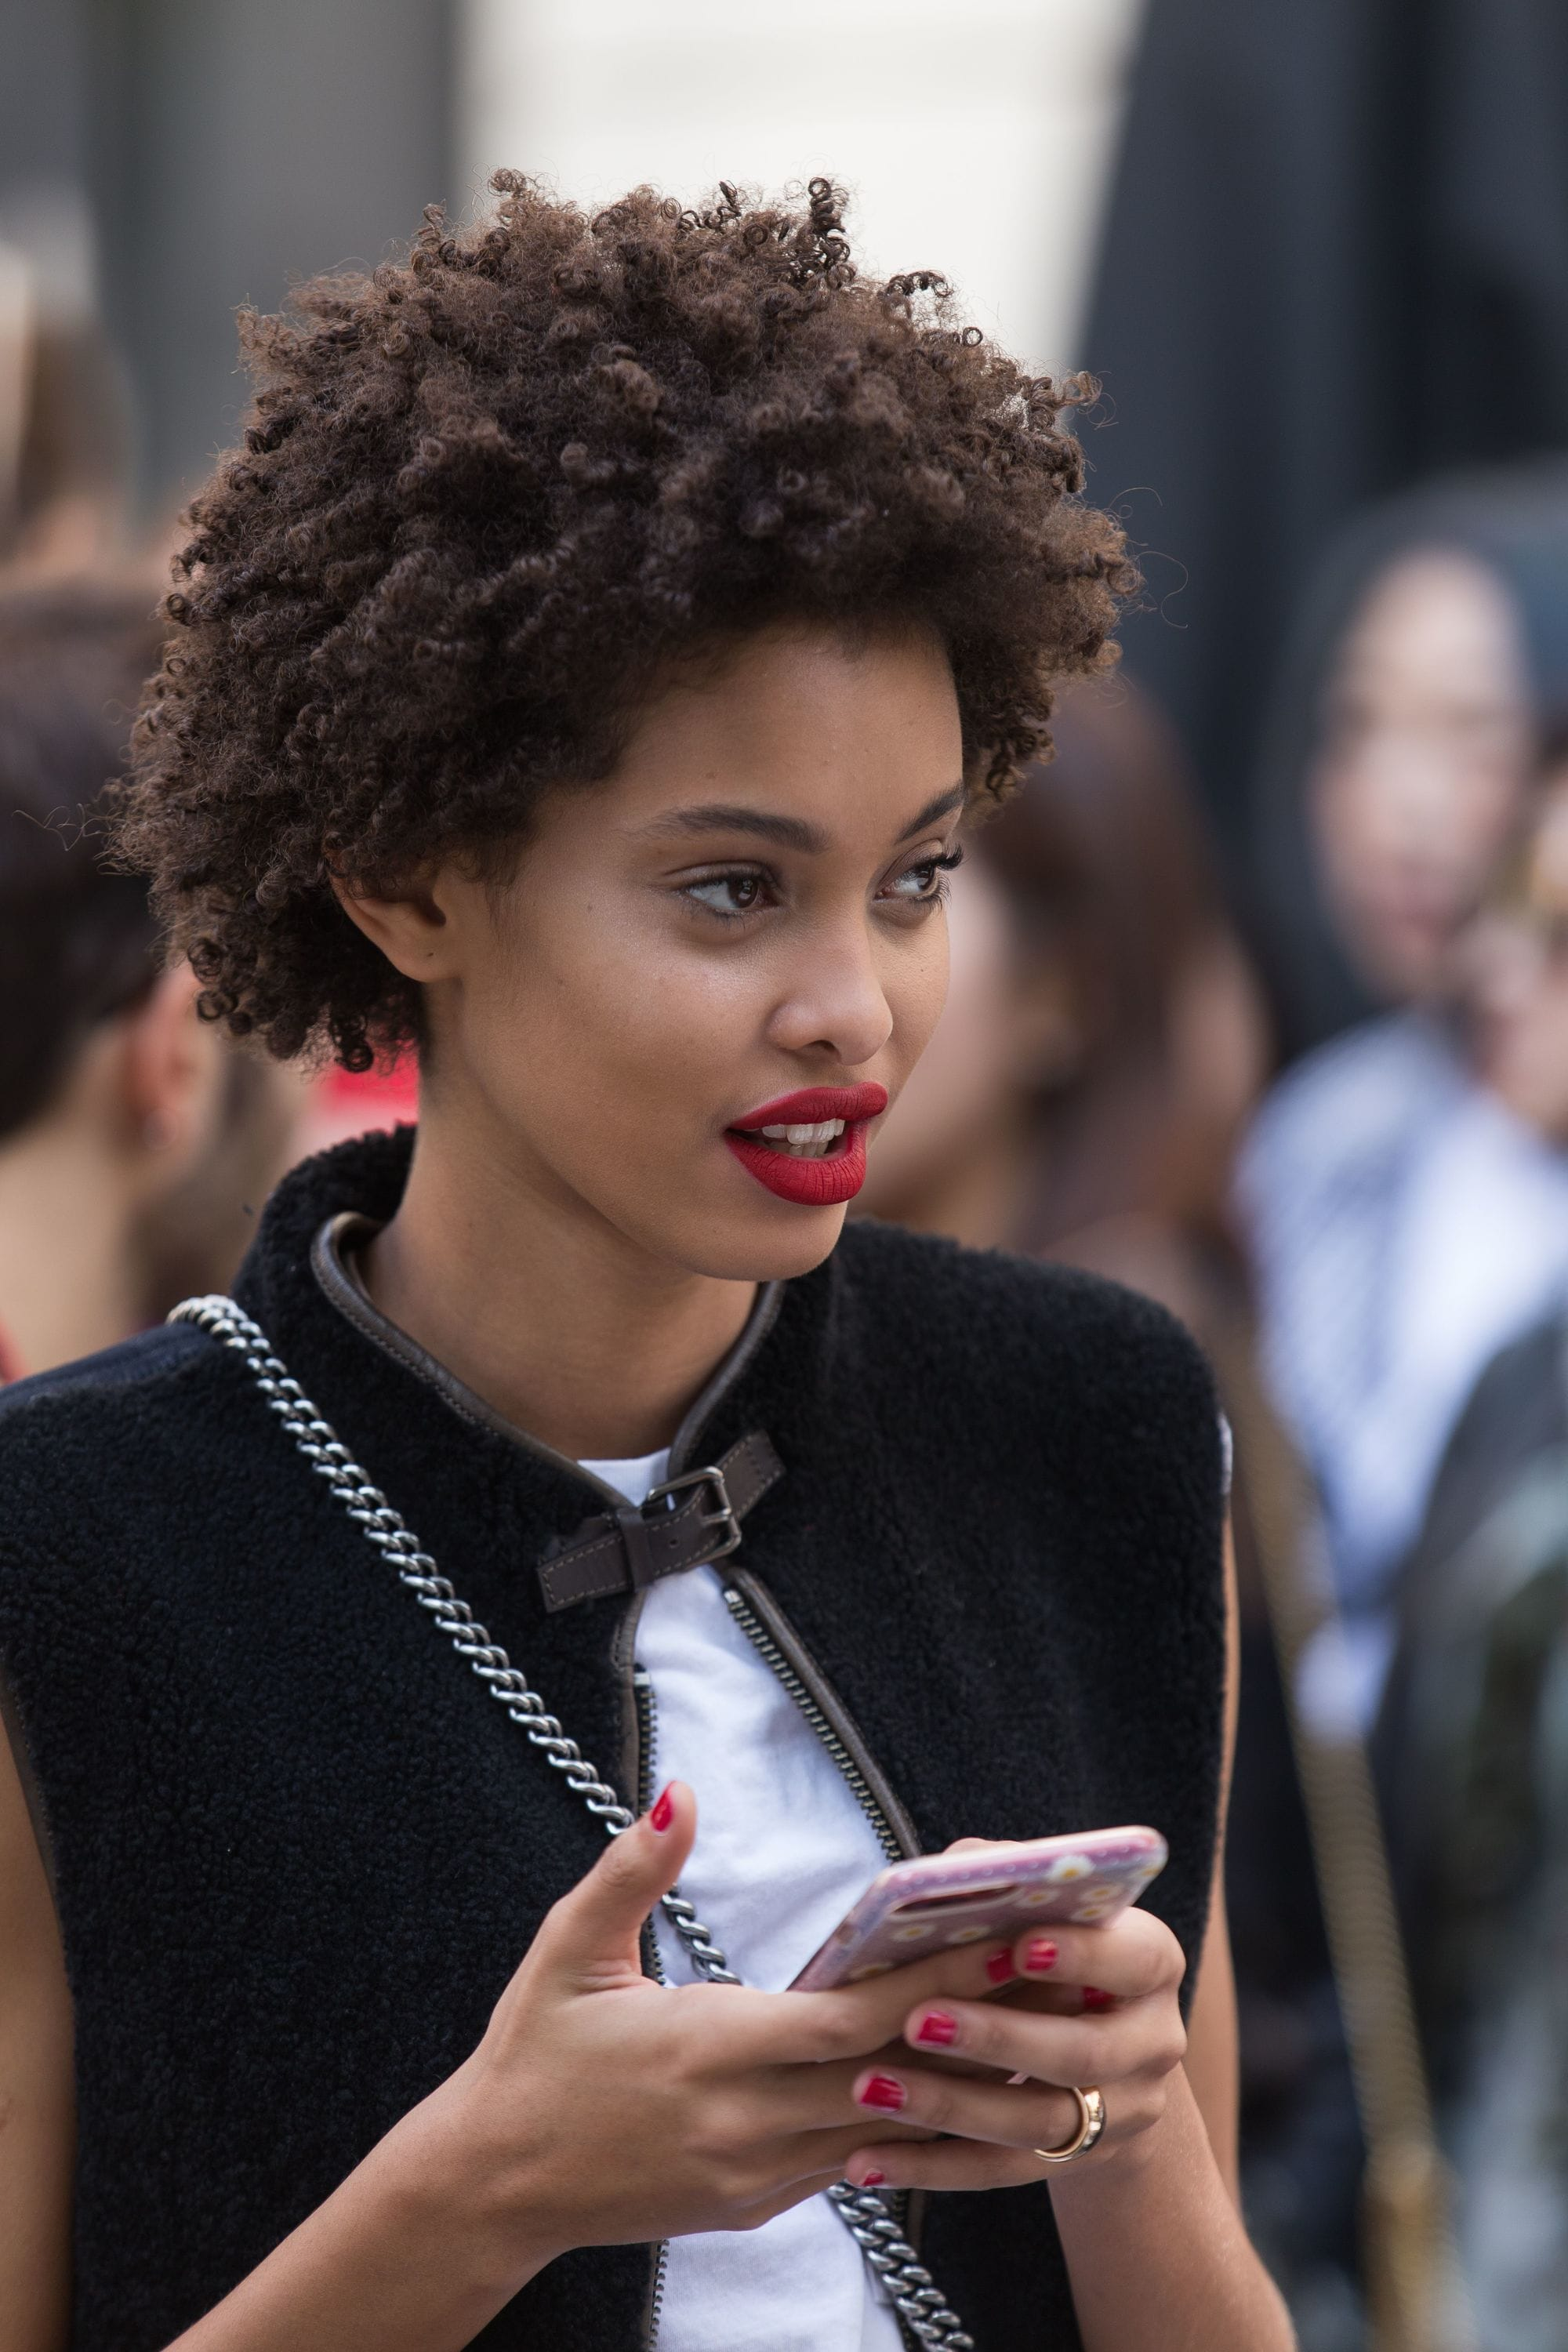 street style model with short brown afro hair wearing red lipstick holding her phone